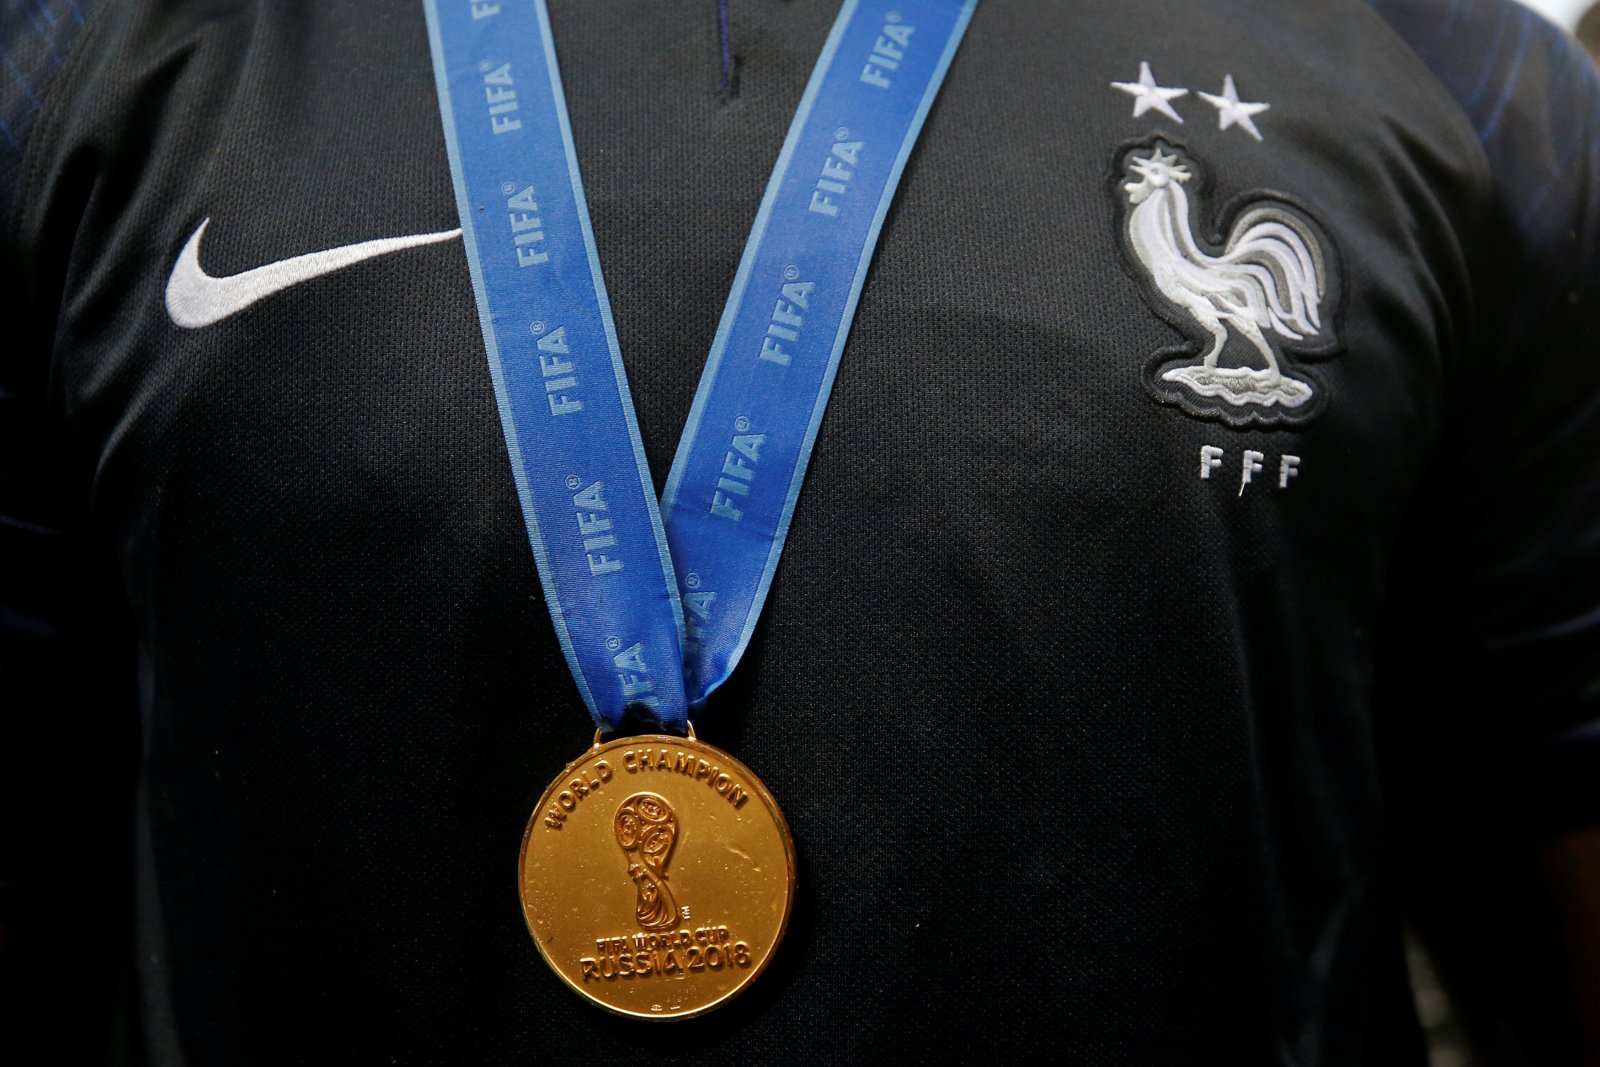 World Cup winner's medal on the chest of a France player